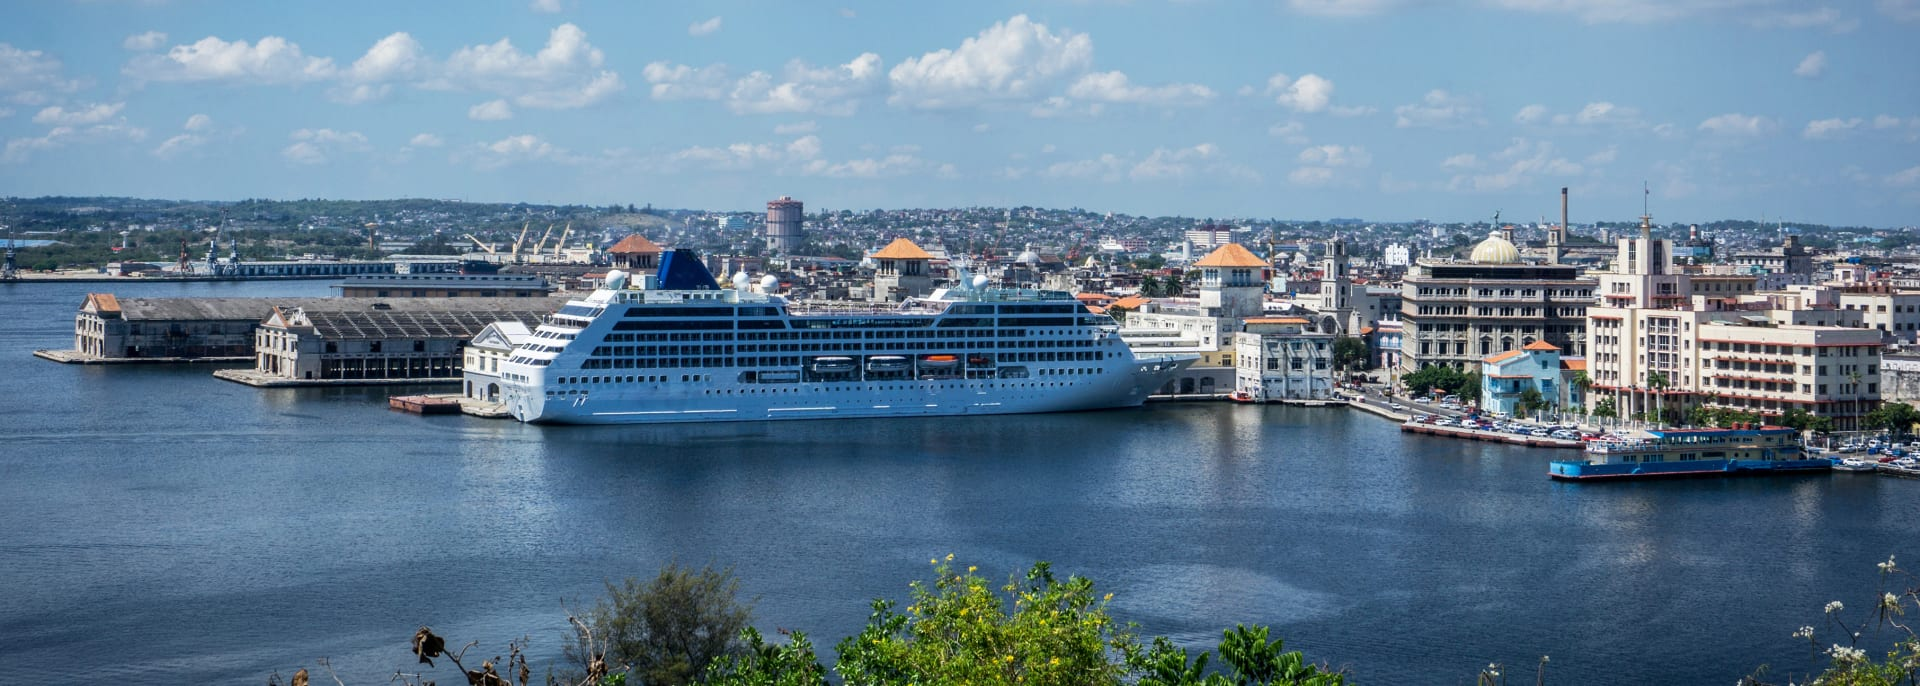 Sunset view from the Castillo De Los Tres Reyes Del Morro. A cruise ship sails from the Havana harbor.